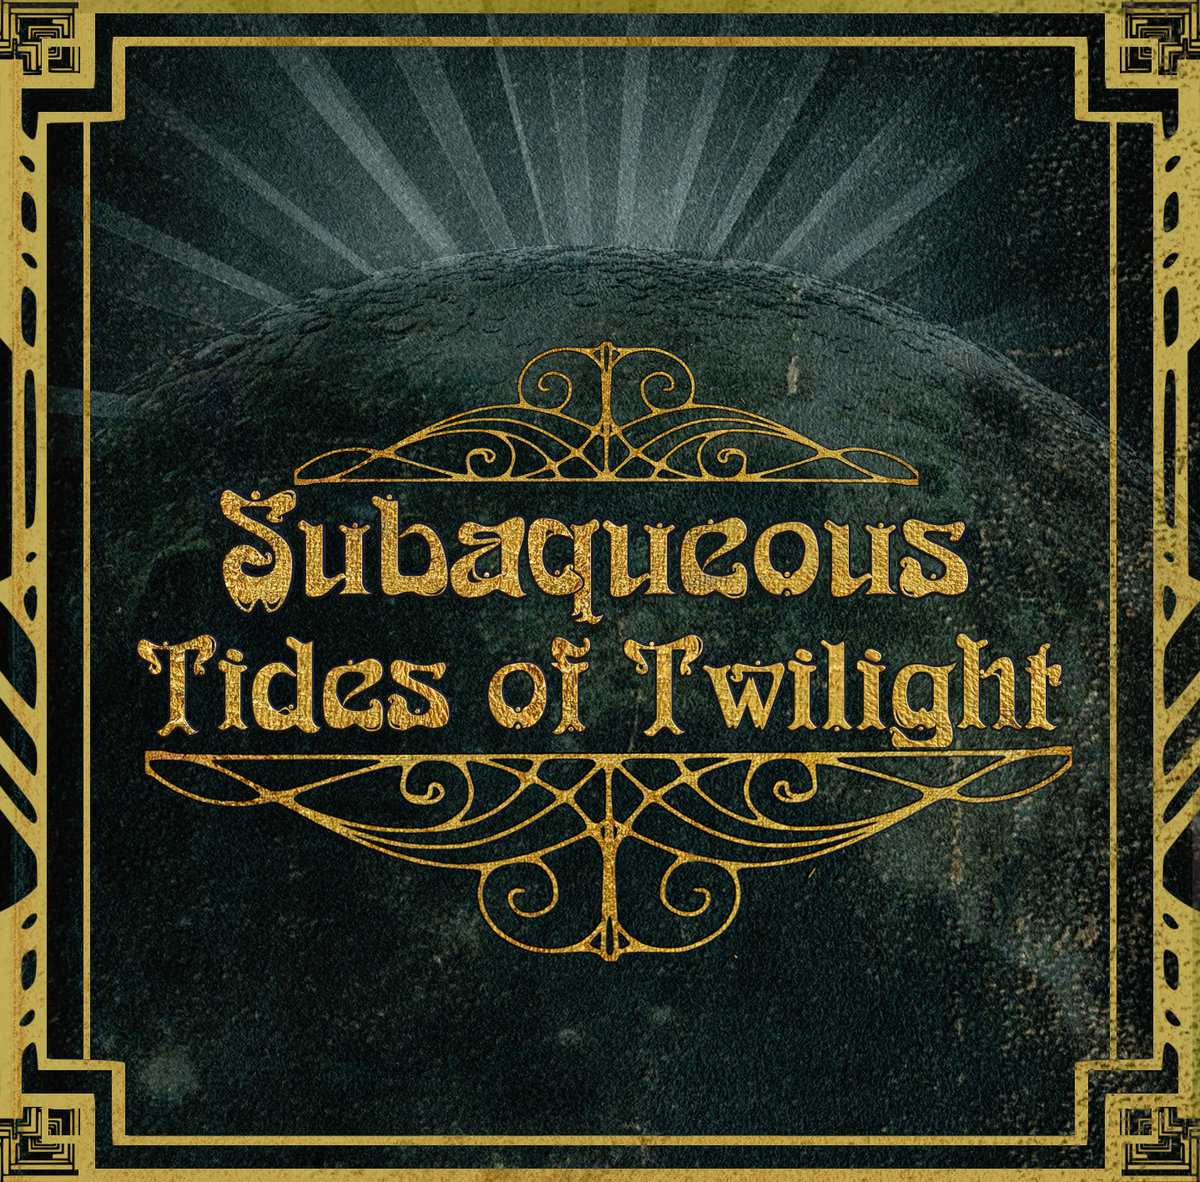 Subaqueous feat. D'answer - Dusk's Dawning @ 'Tides of Twilight' album (electronic, ambient)